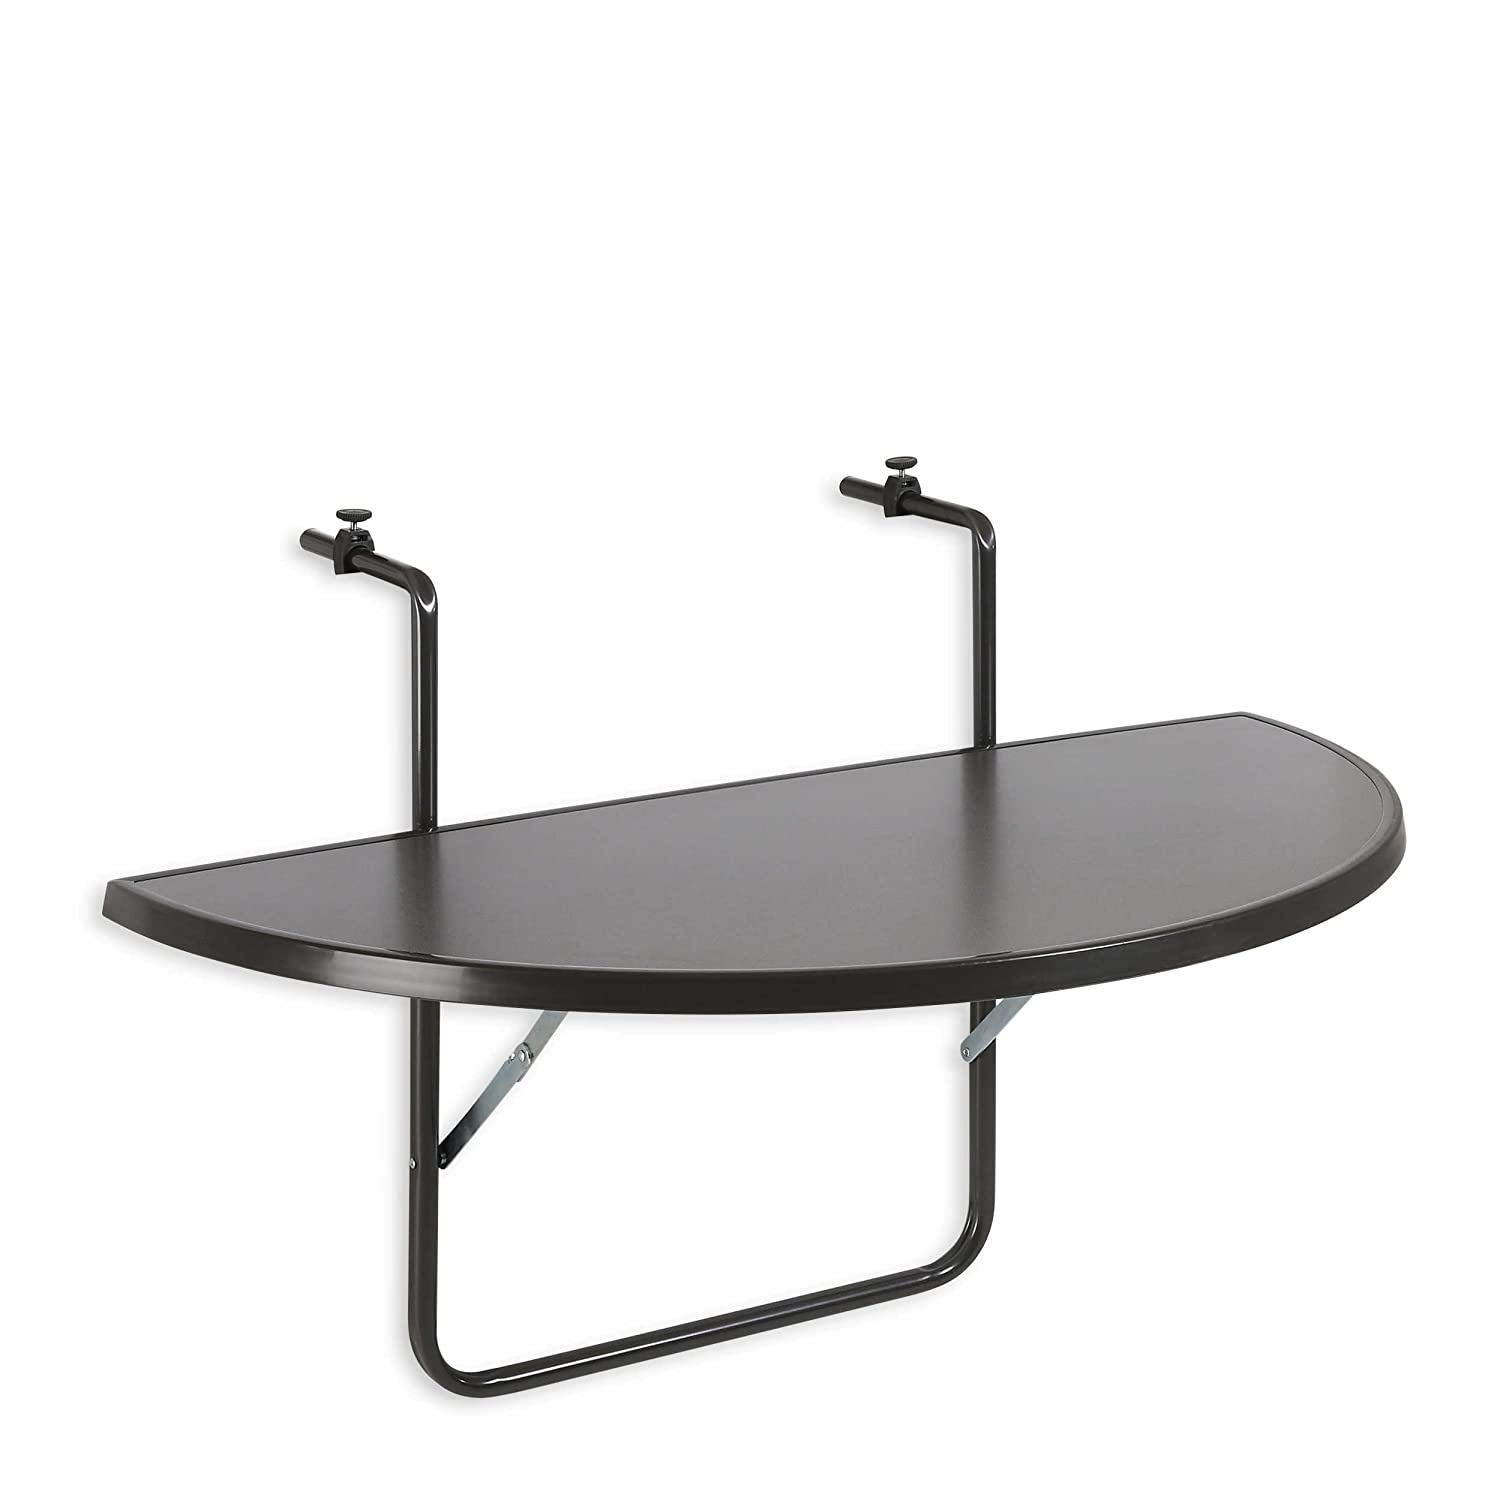 Best Butler 36501550 Table de balcon demi lune À suspendre Anthracite 100 x 50 cm